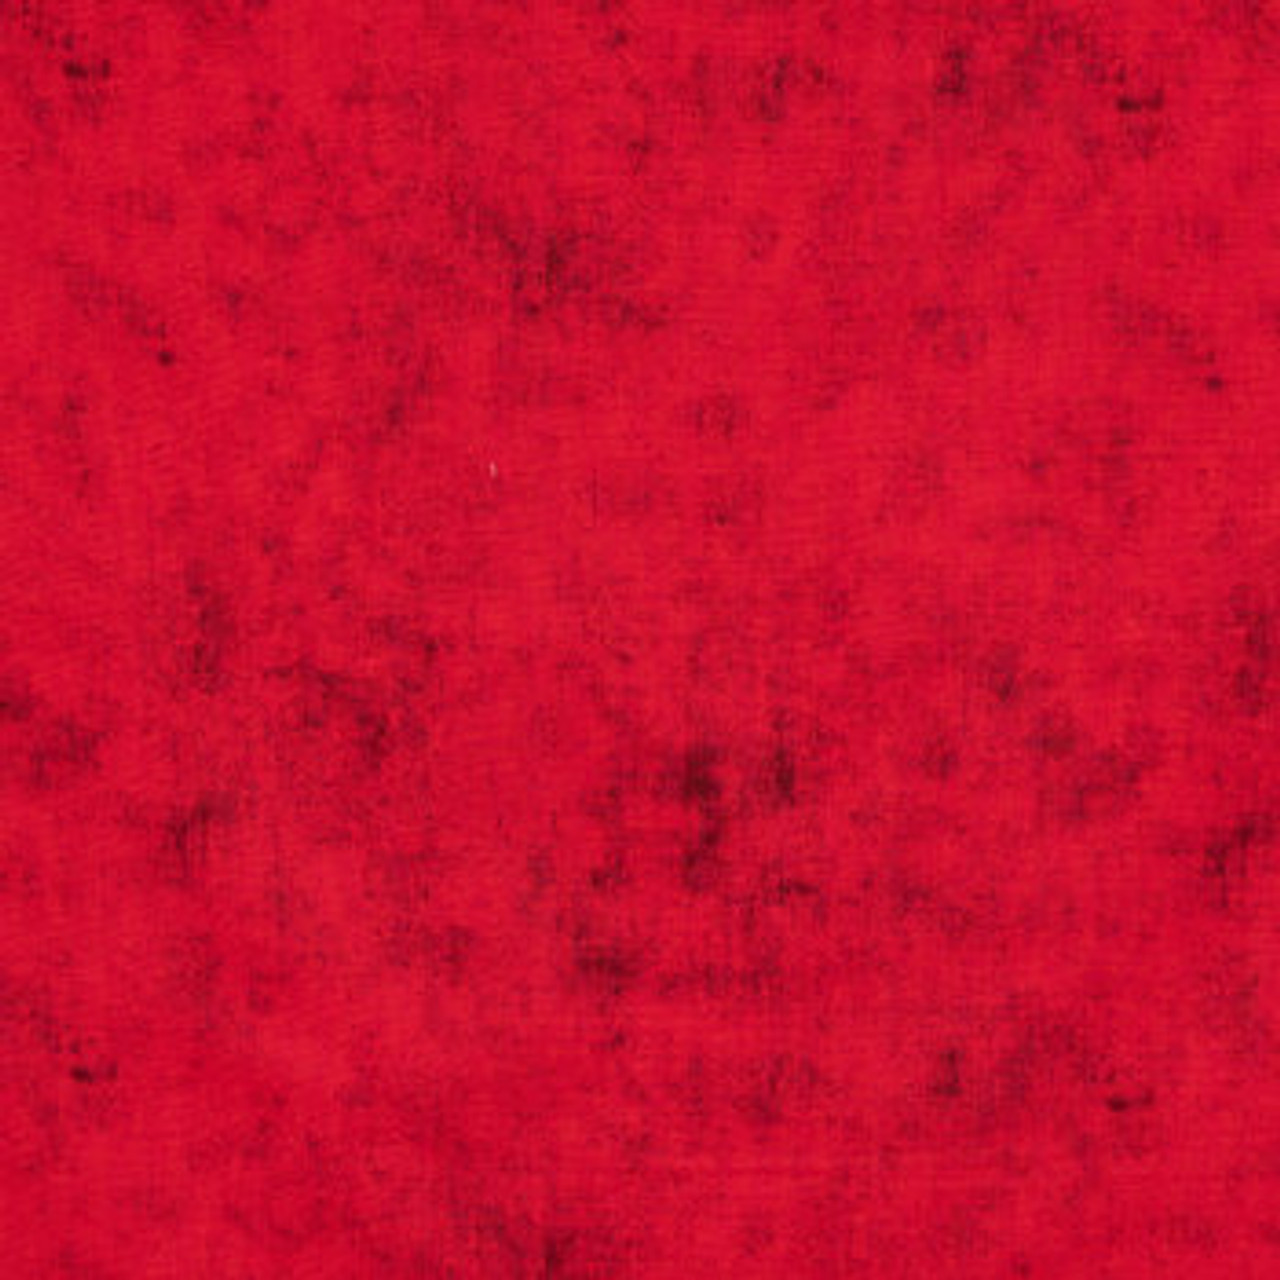 Distressed Red Fabric